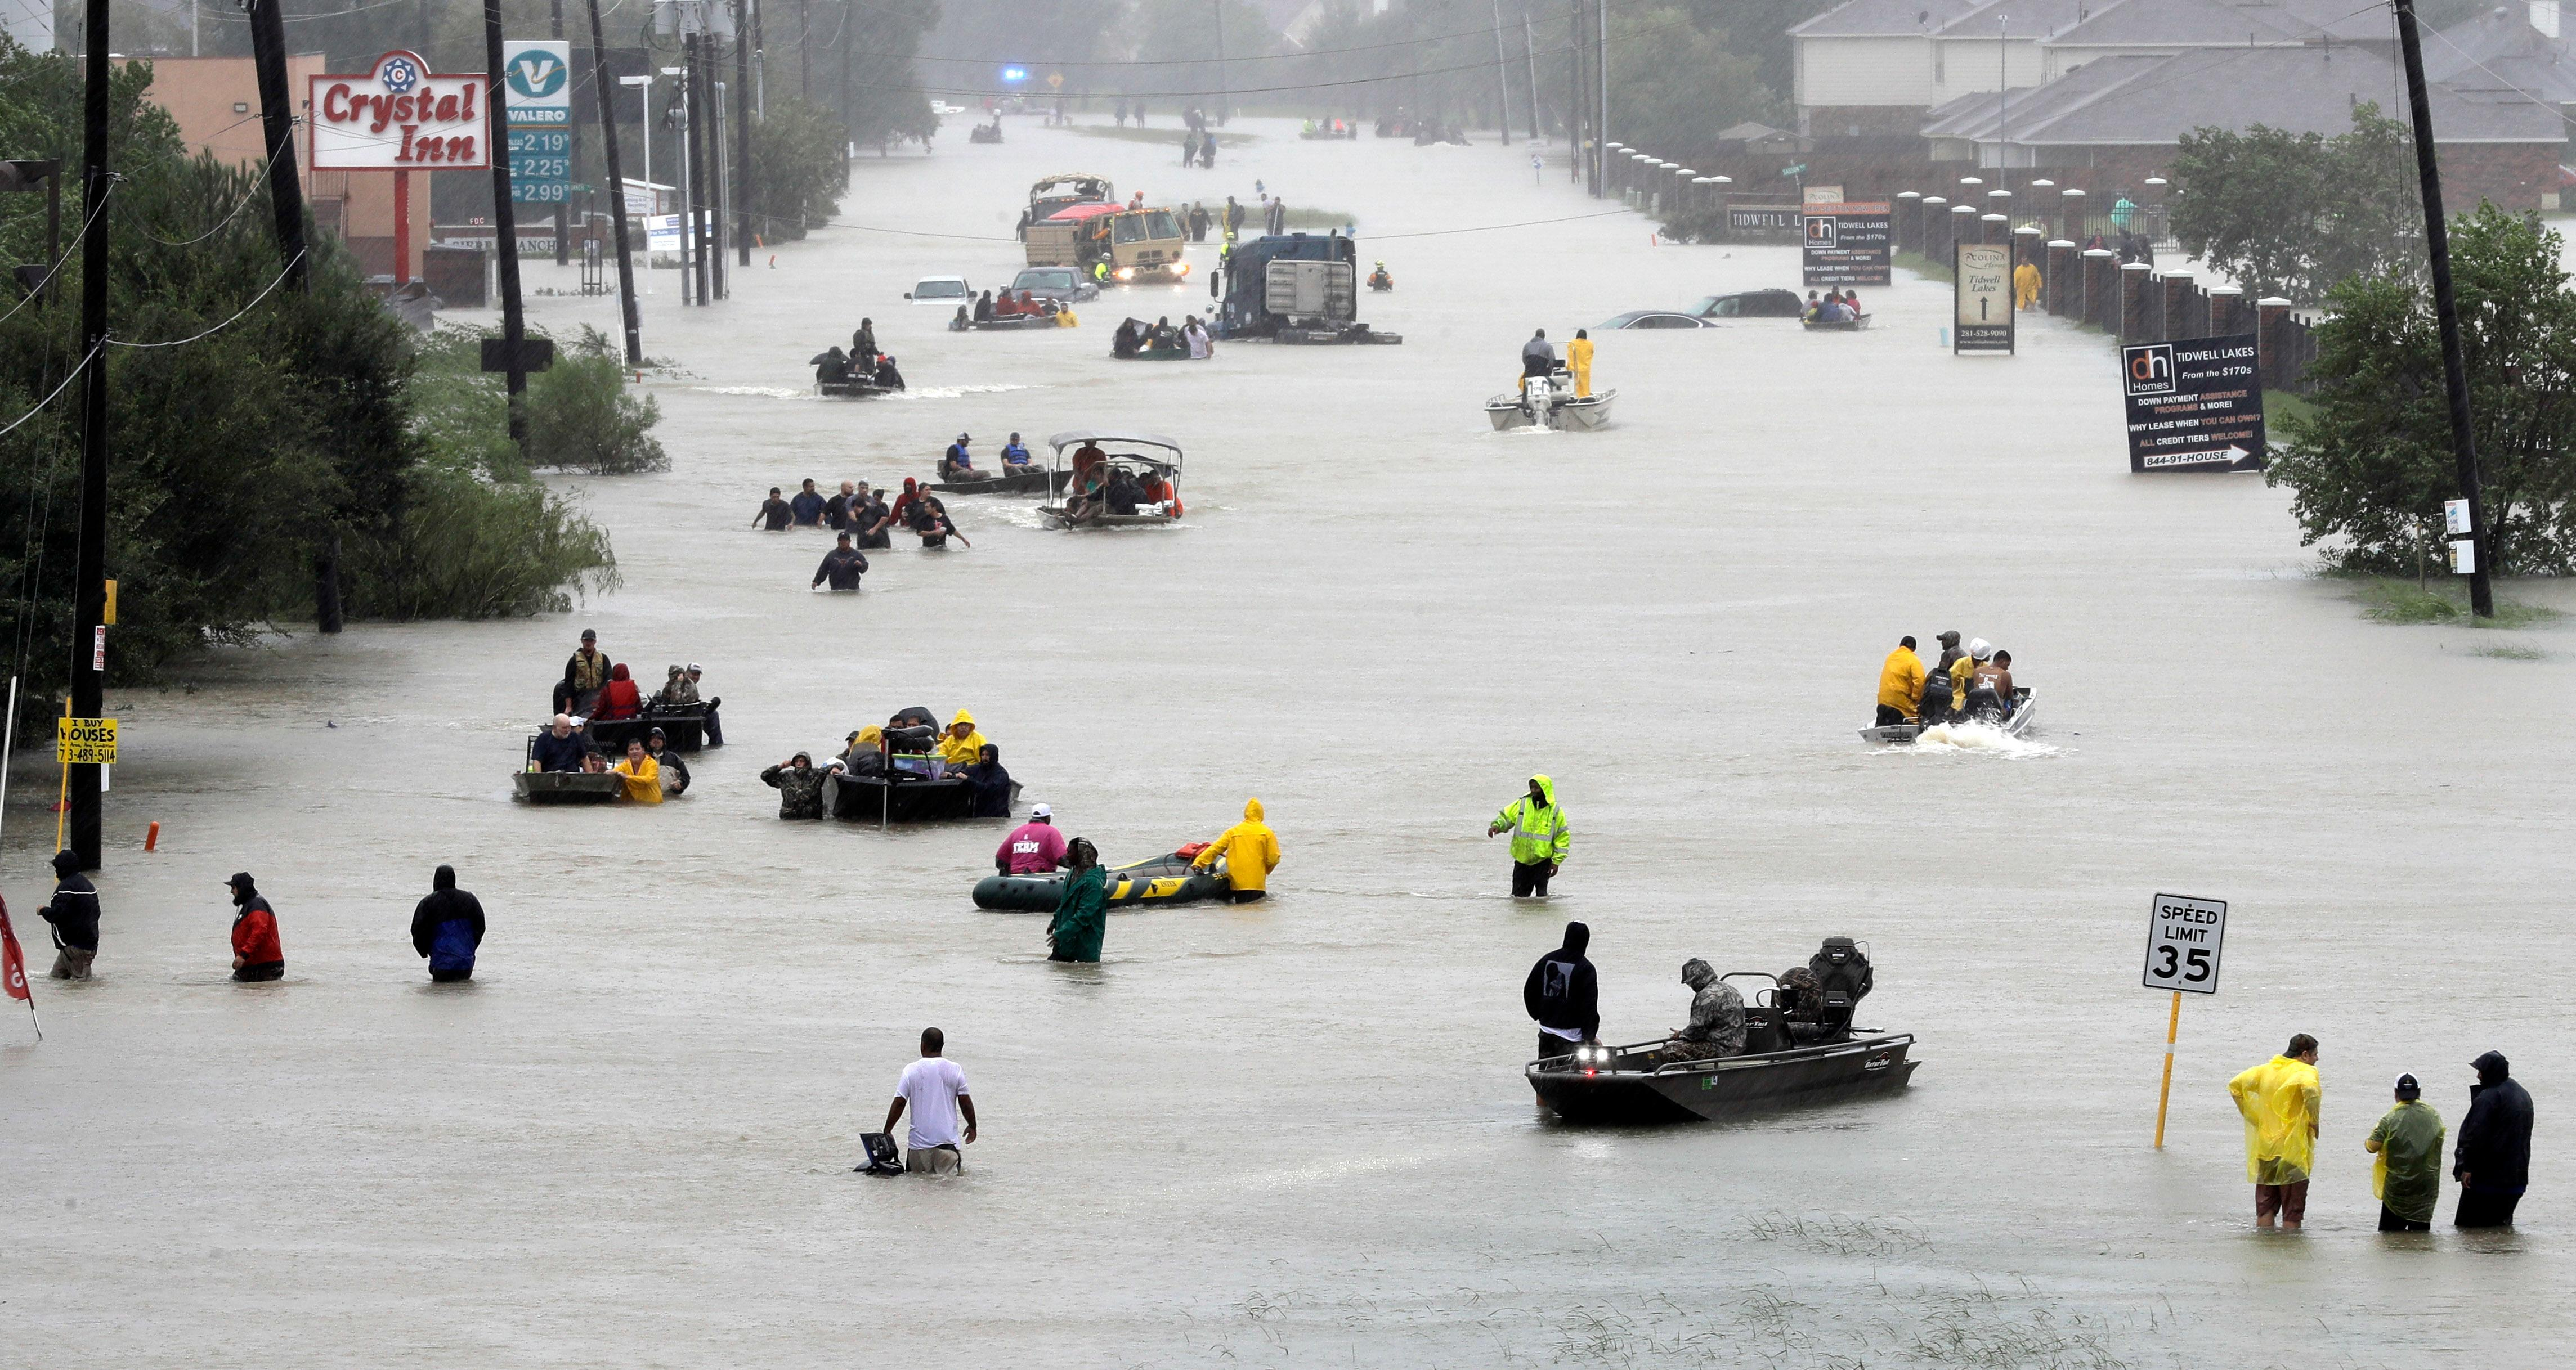 Rescue boats fill a flooded street as flood victims are evacuated as floodwaters from Tropical Storm Harvey rise Monday, Aug. 28